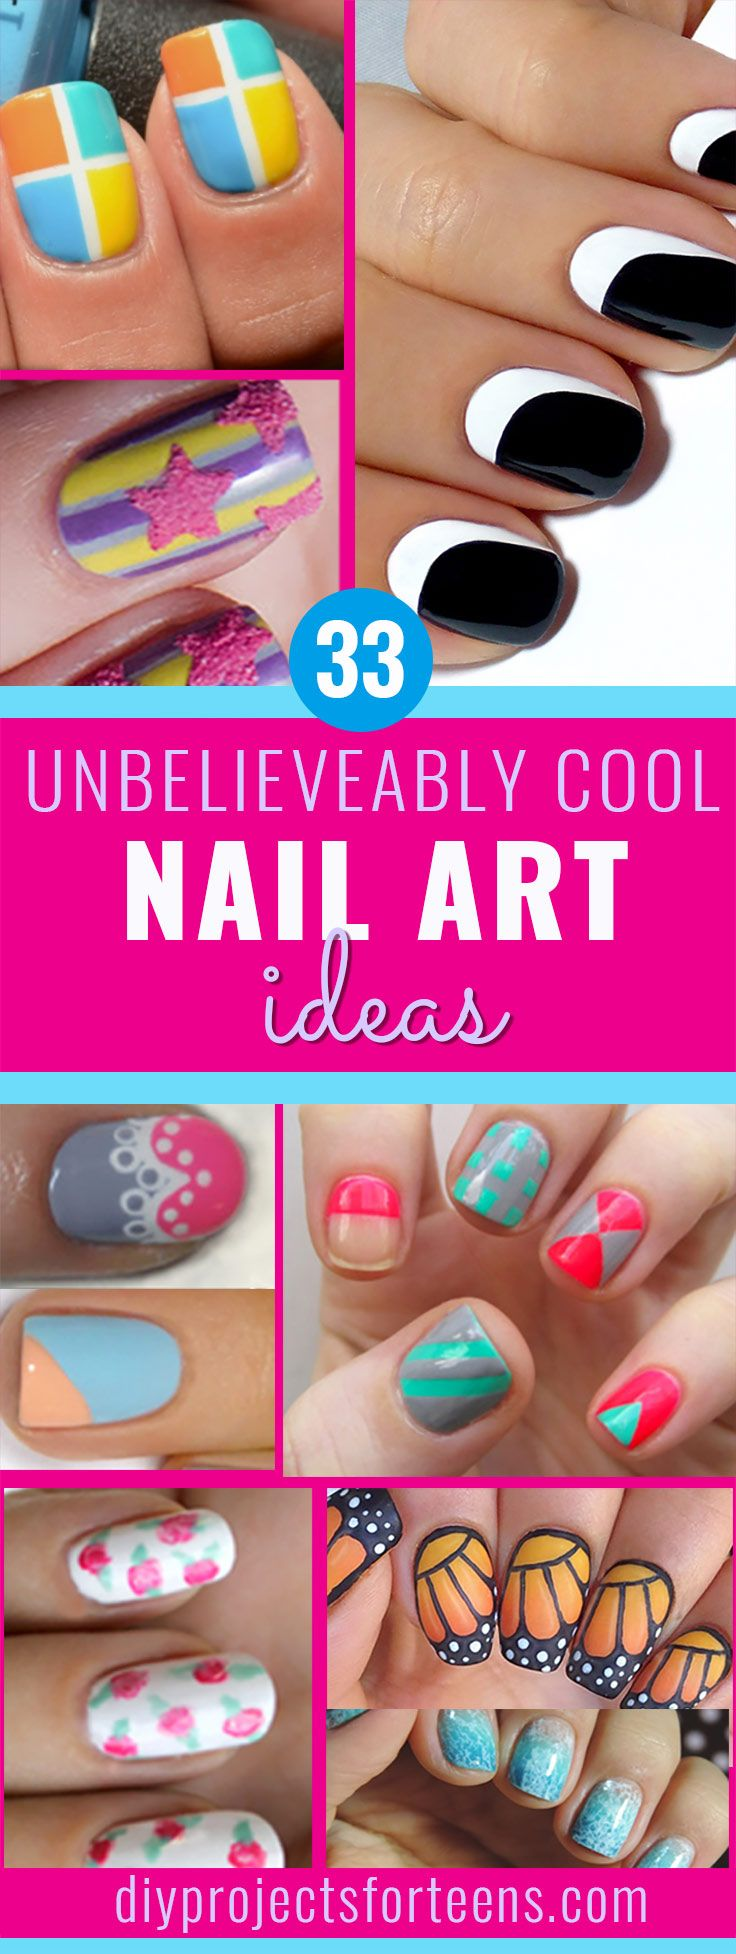 75 best nail art for teens images on pinterest makeup diy and 33 diy nail art ideas cool nail tutorials for teens and fun ones for adults prinsesfo Images